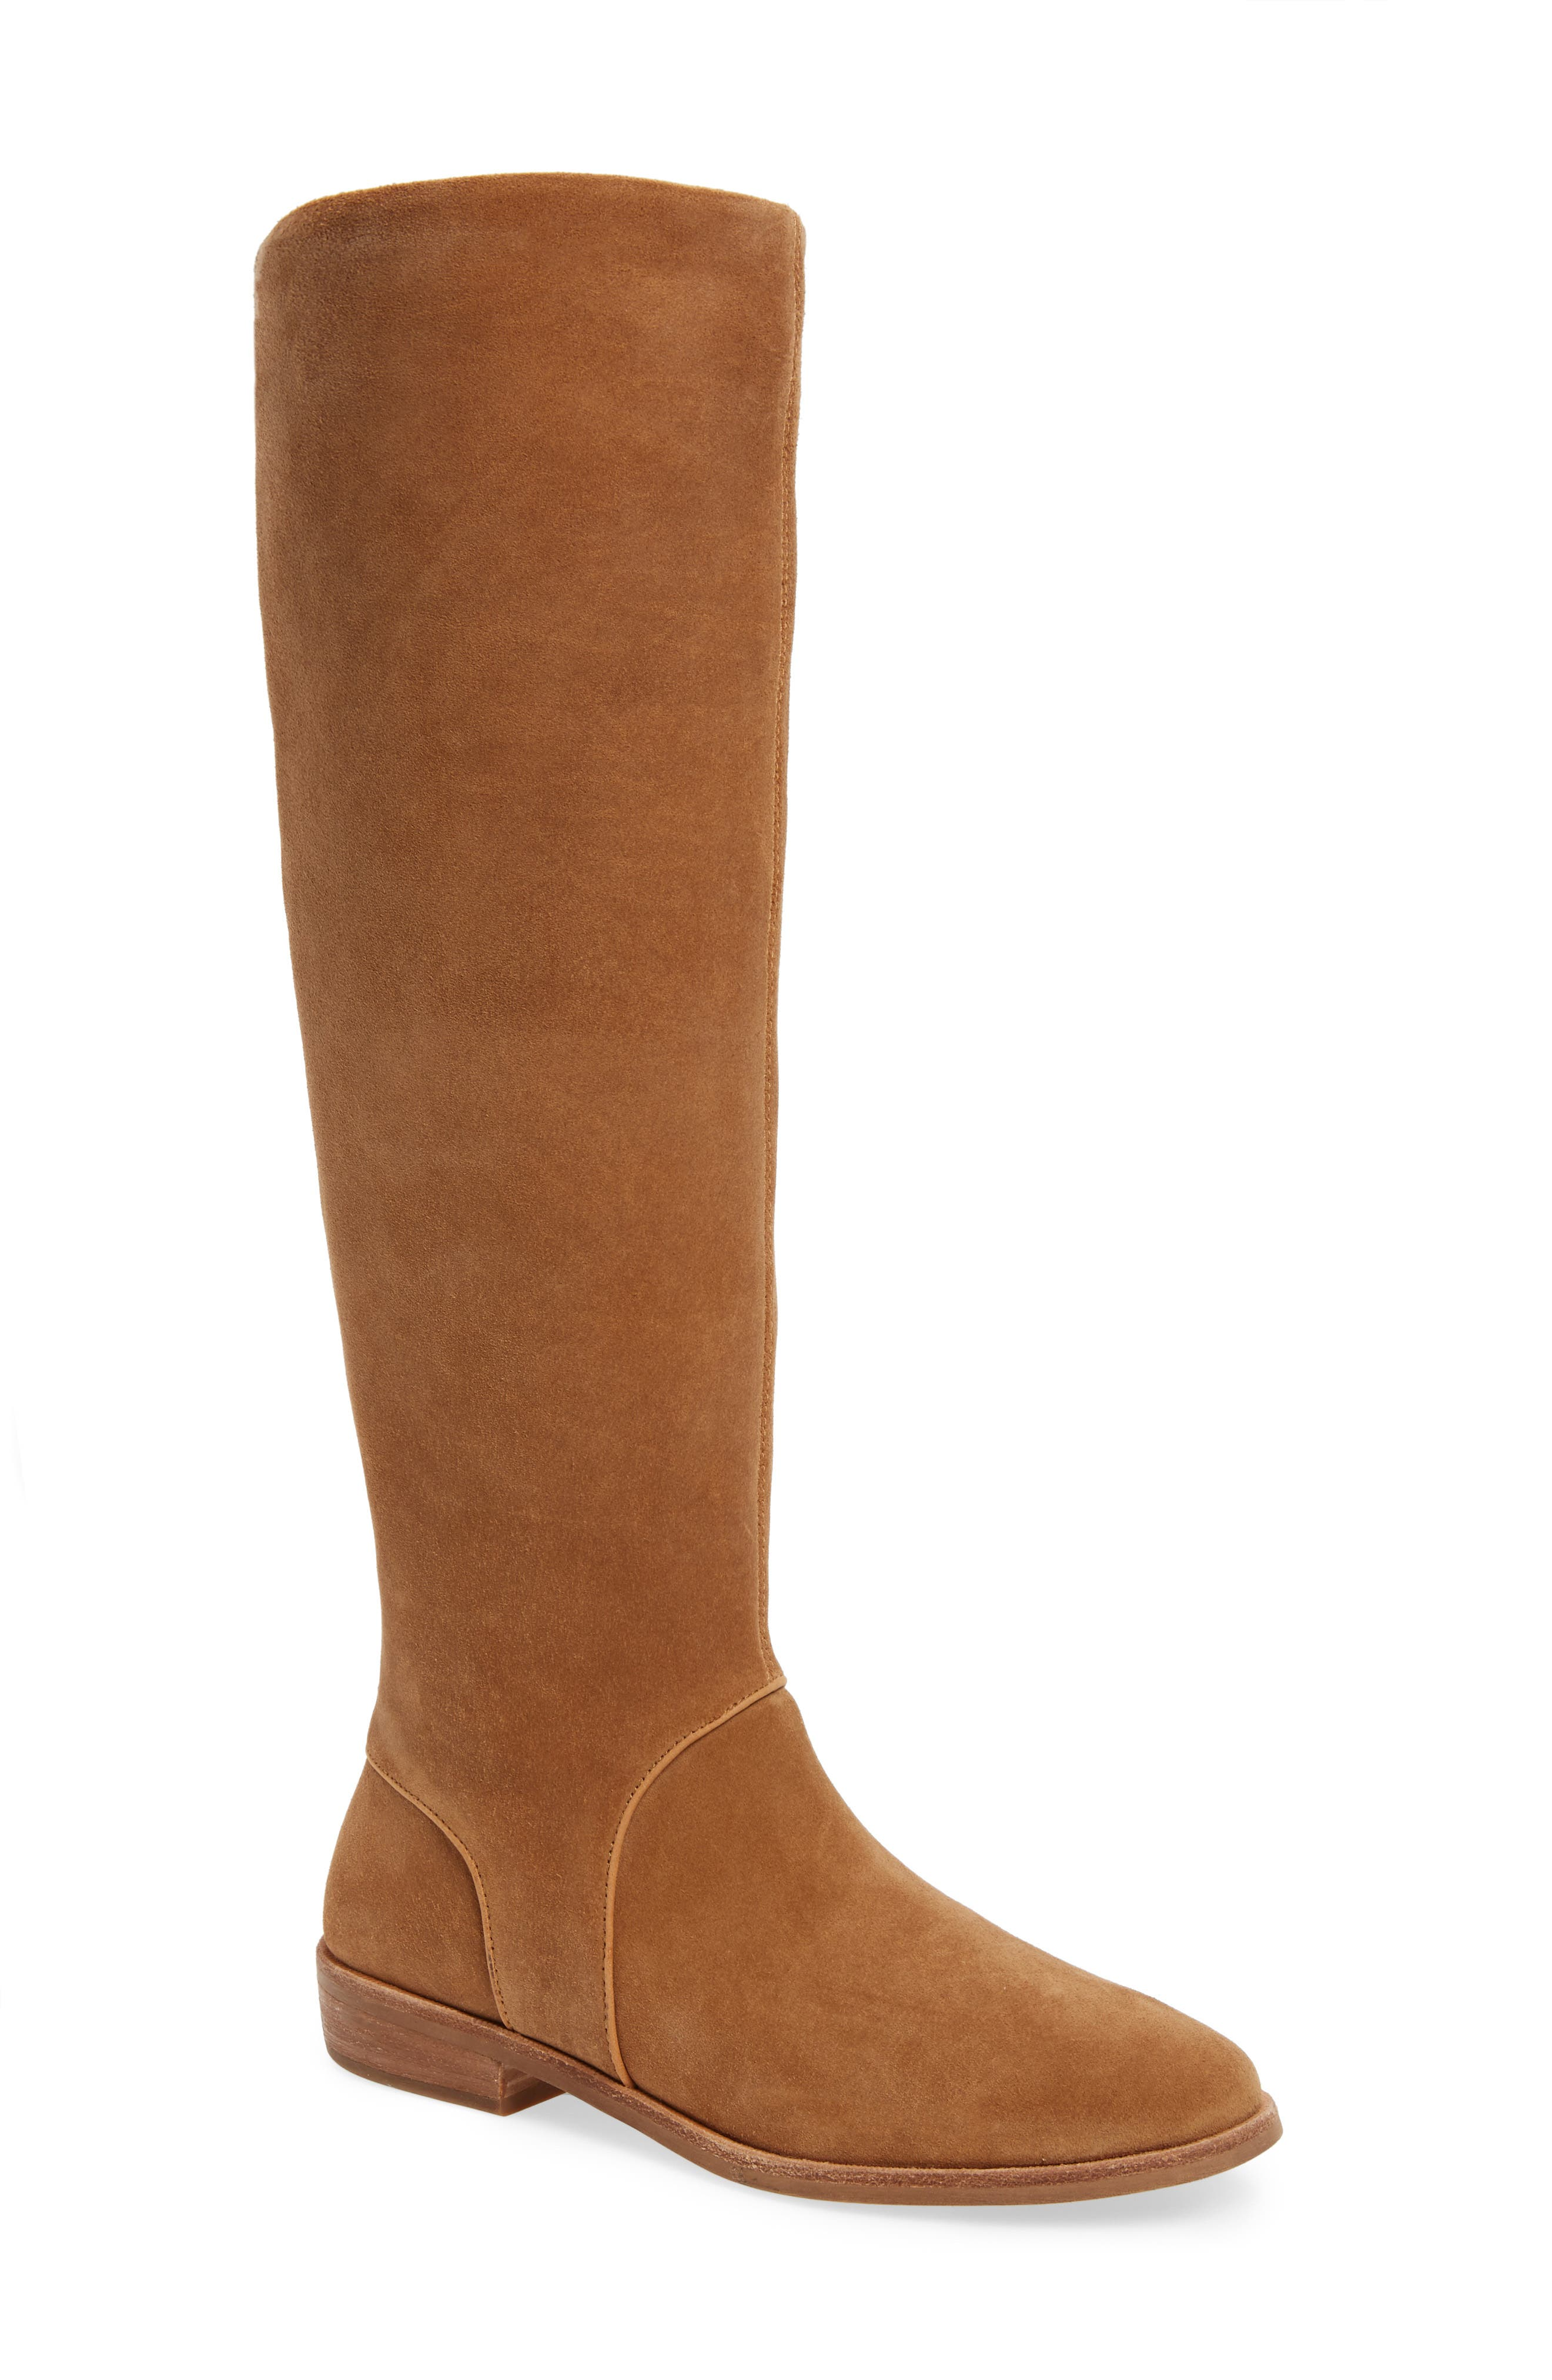 Alternate Image 1 Selected - UGG® Daley Tall Boot (Women)